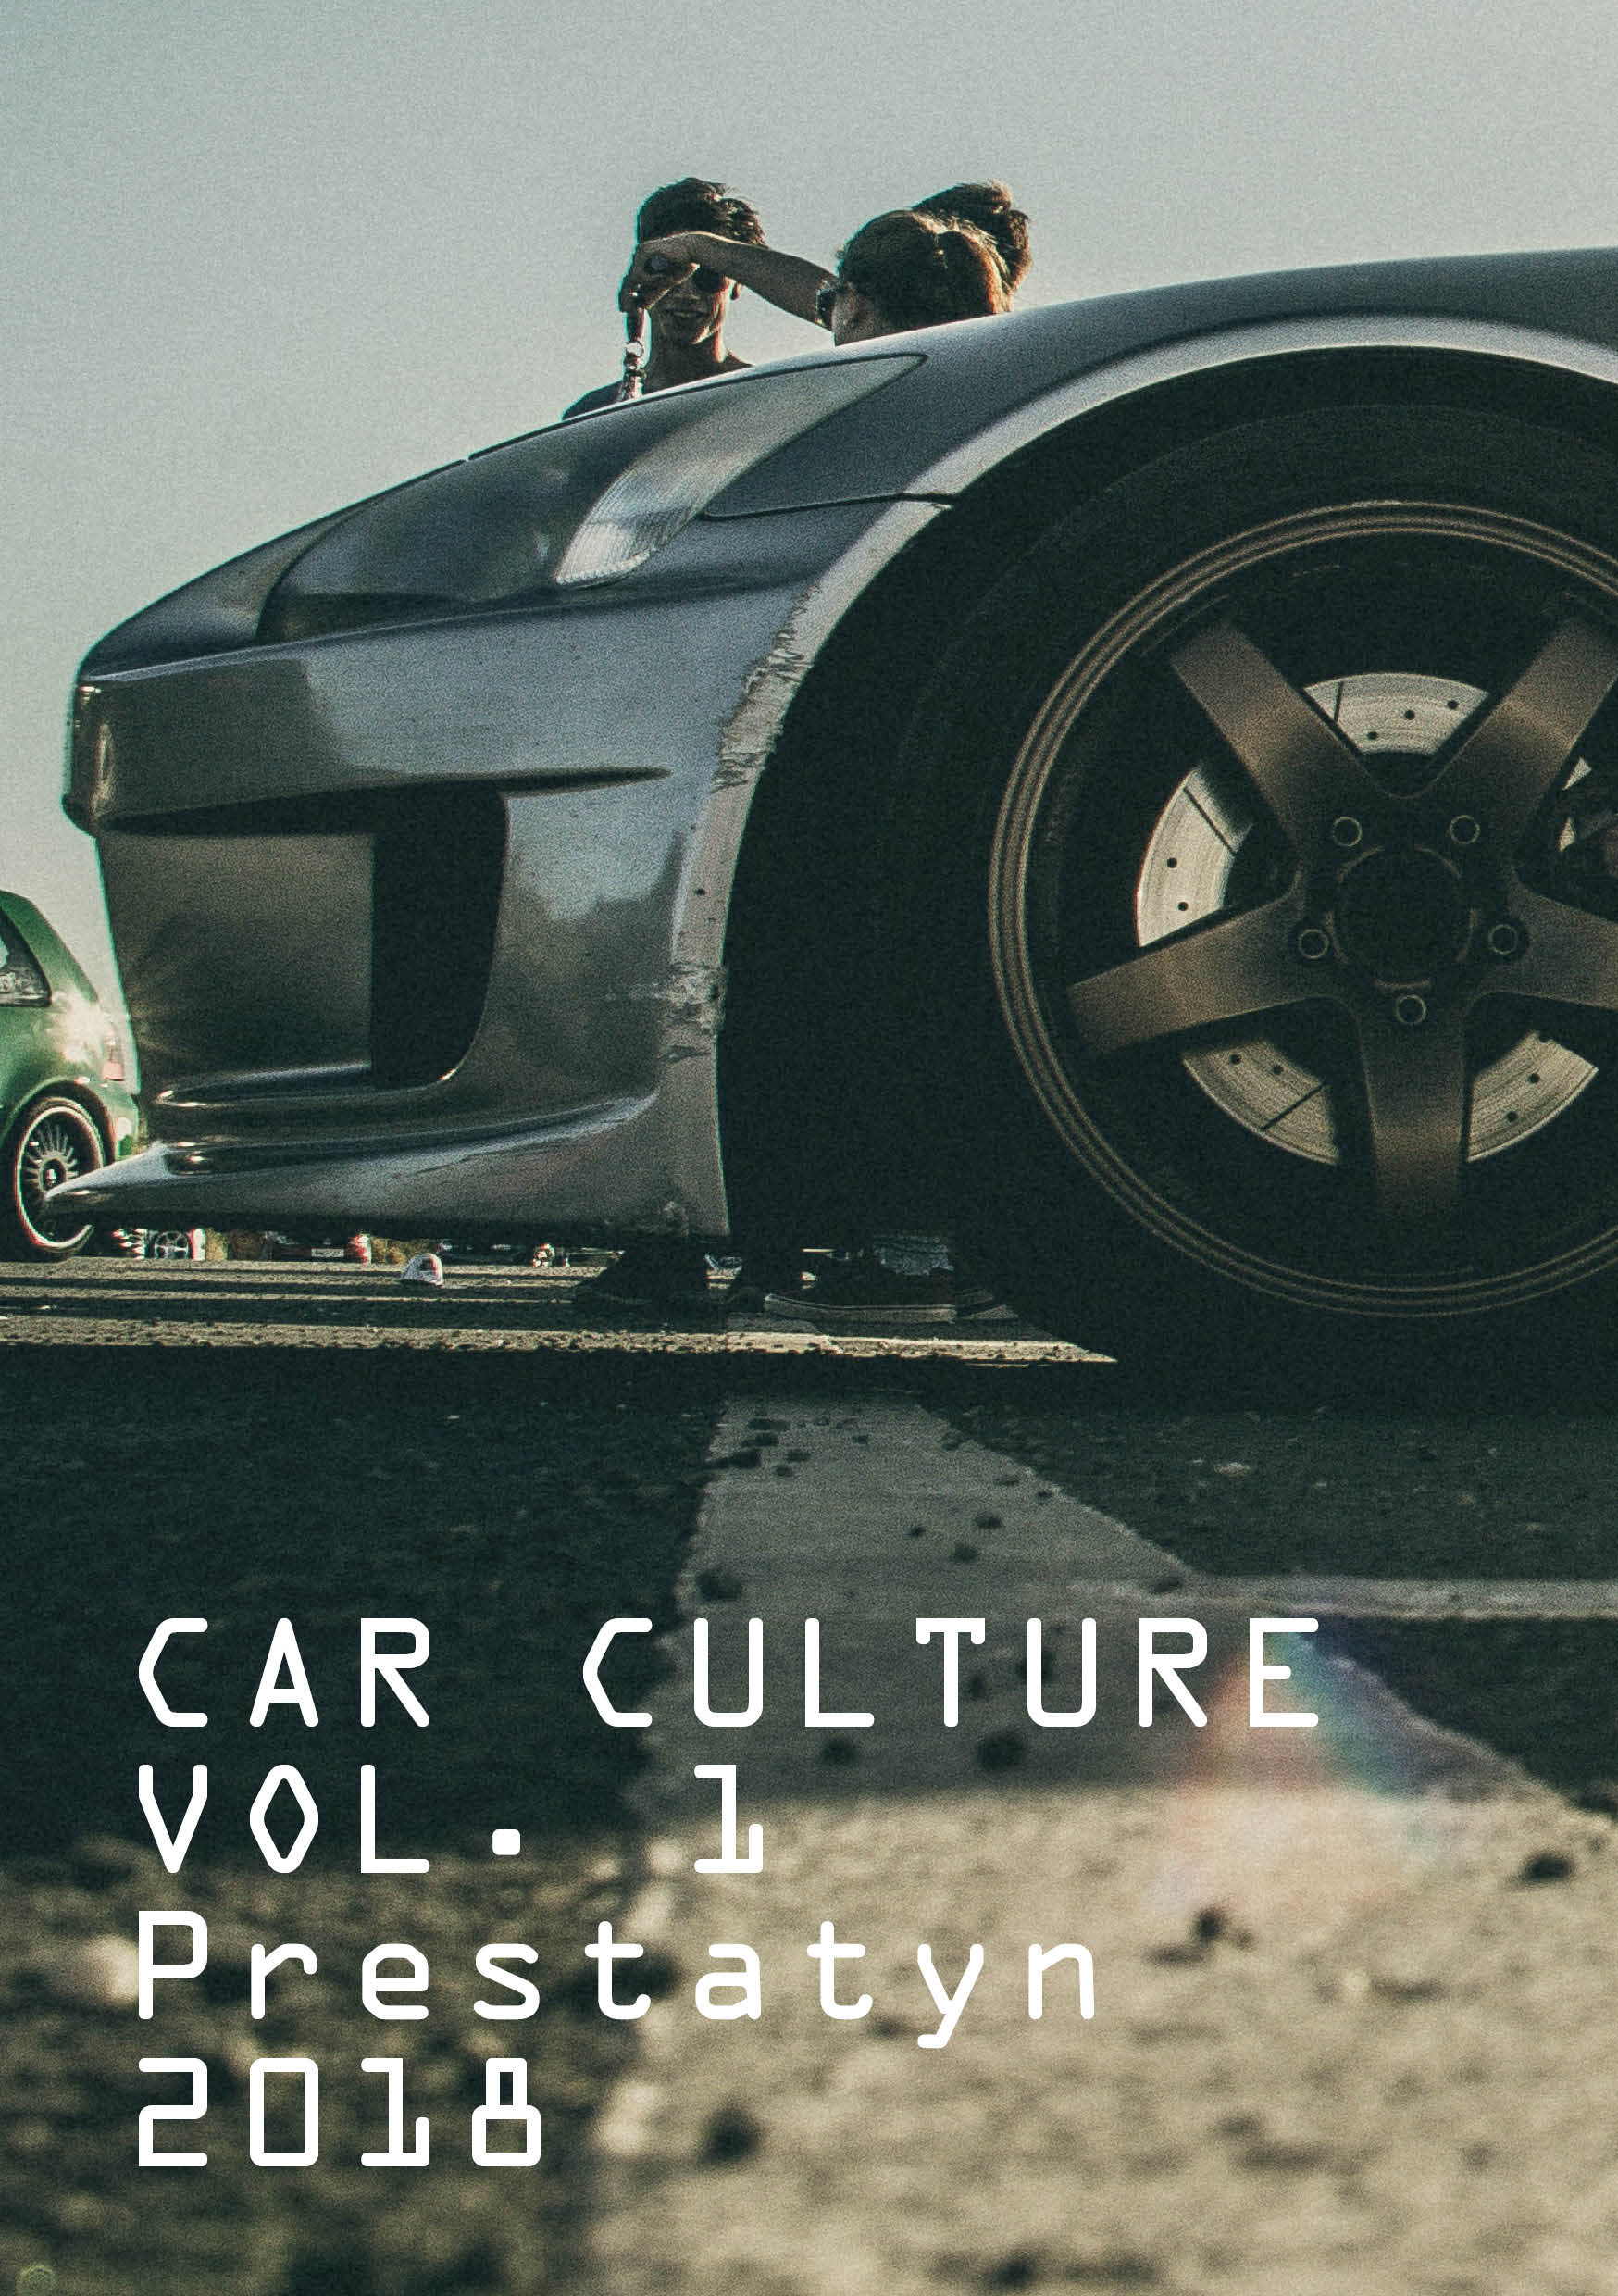 CAR CULTURE PROJECT Image